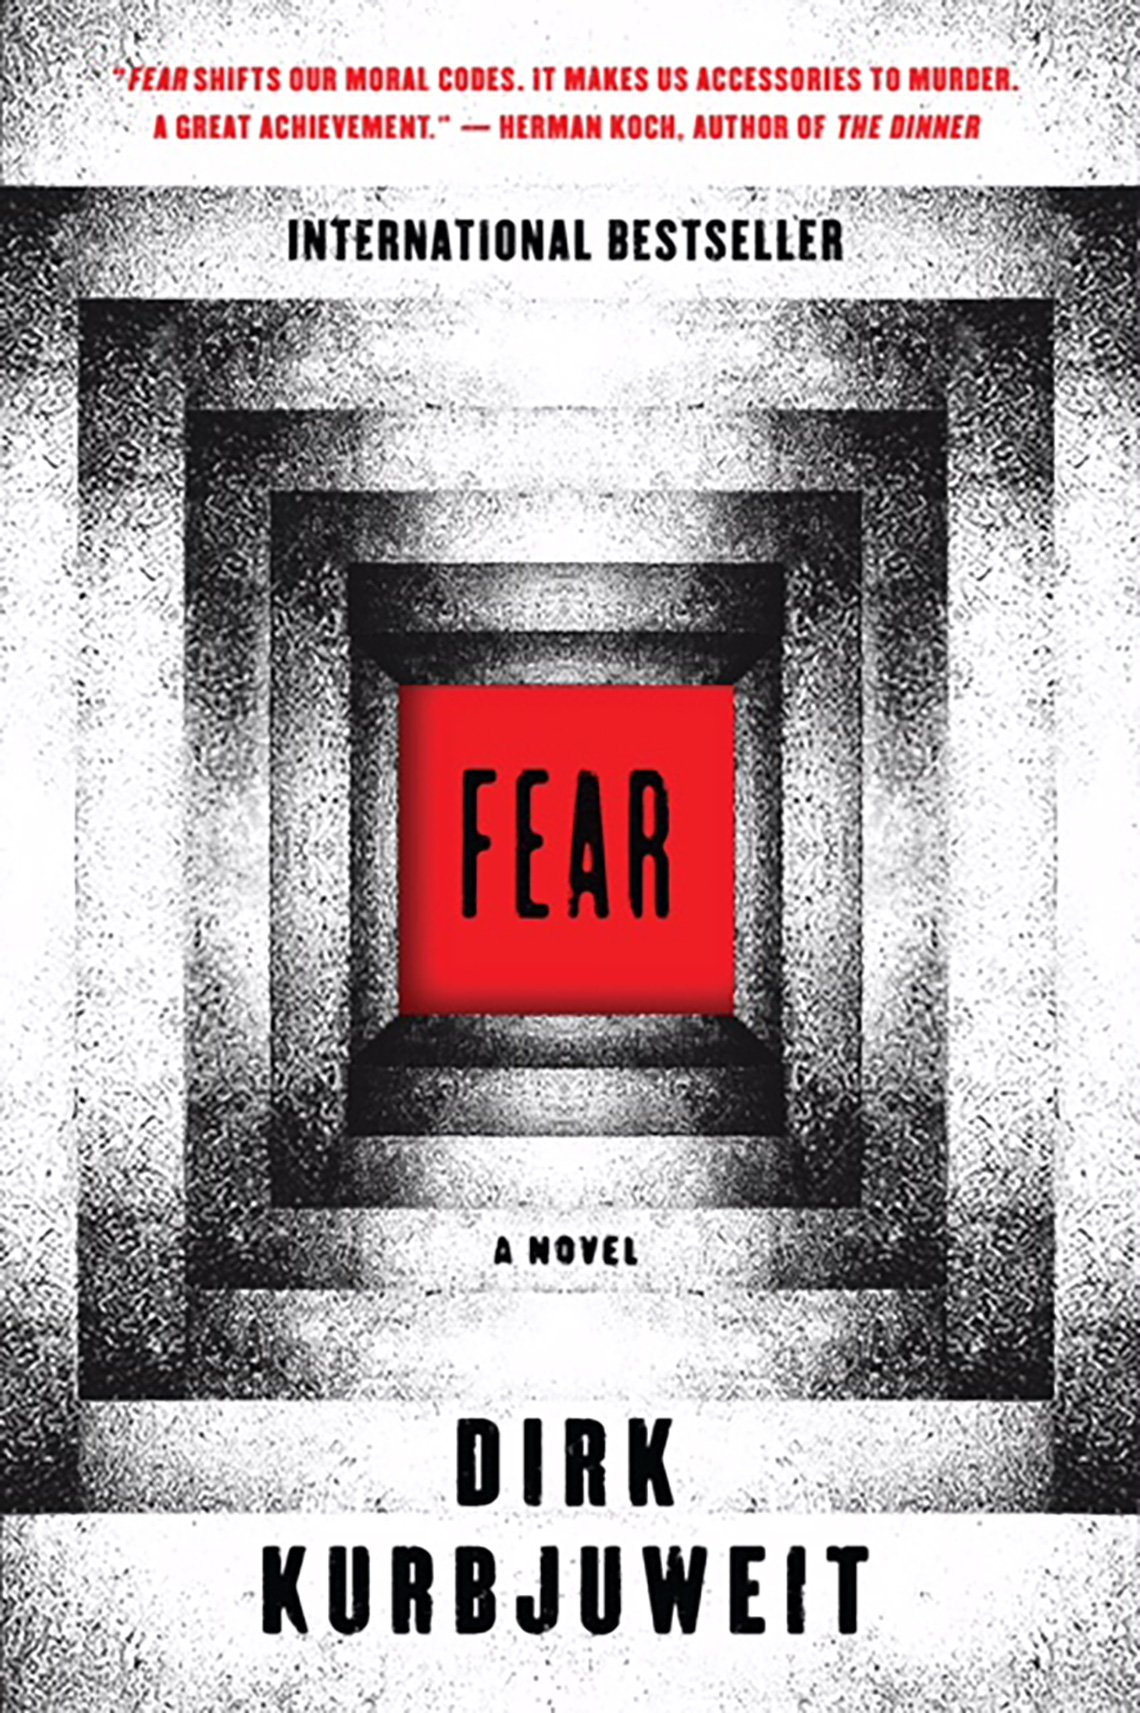 'Fear: A Novel' by Dirk Kurbjeweit